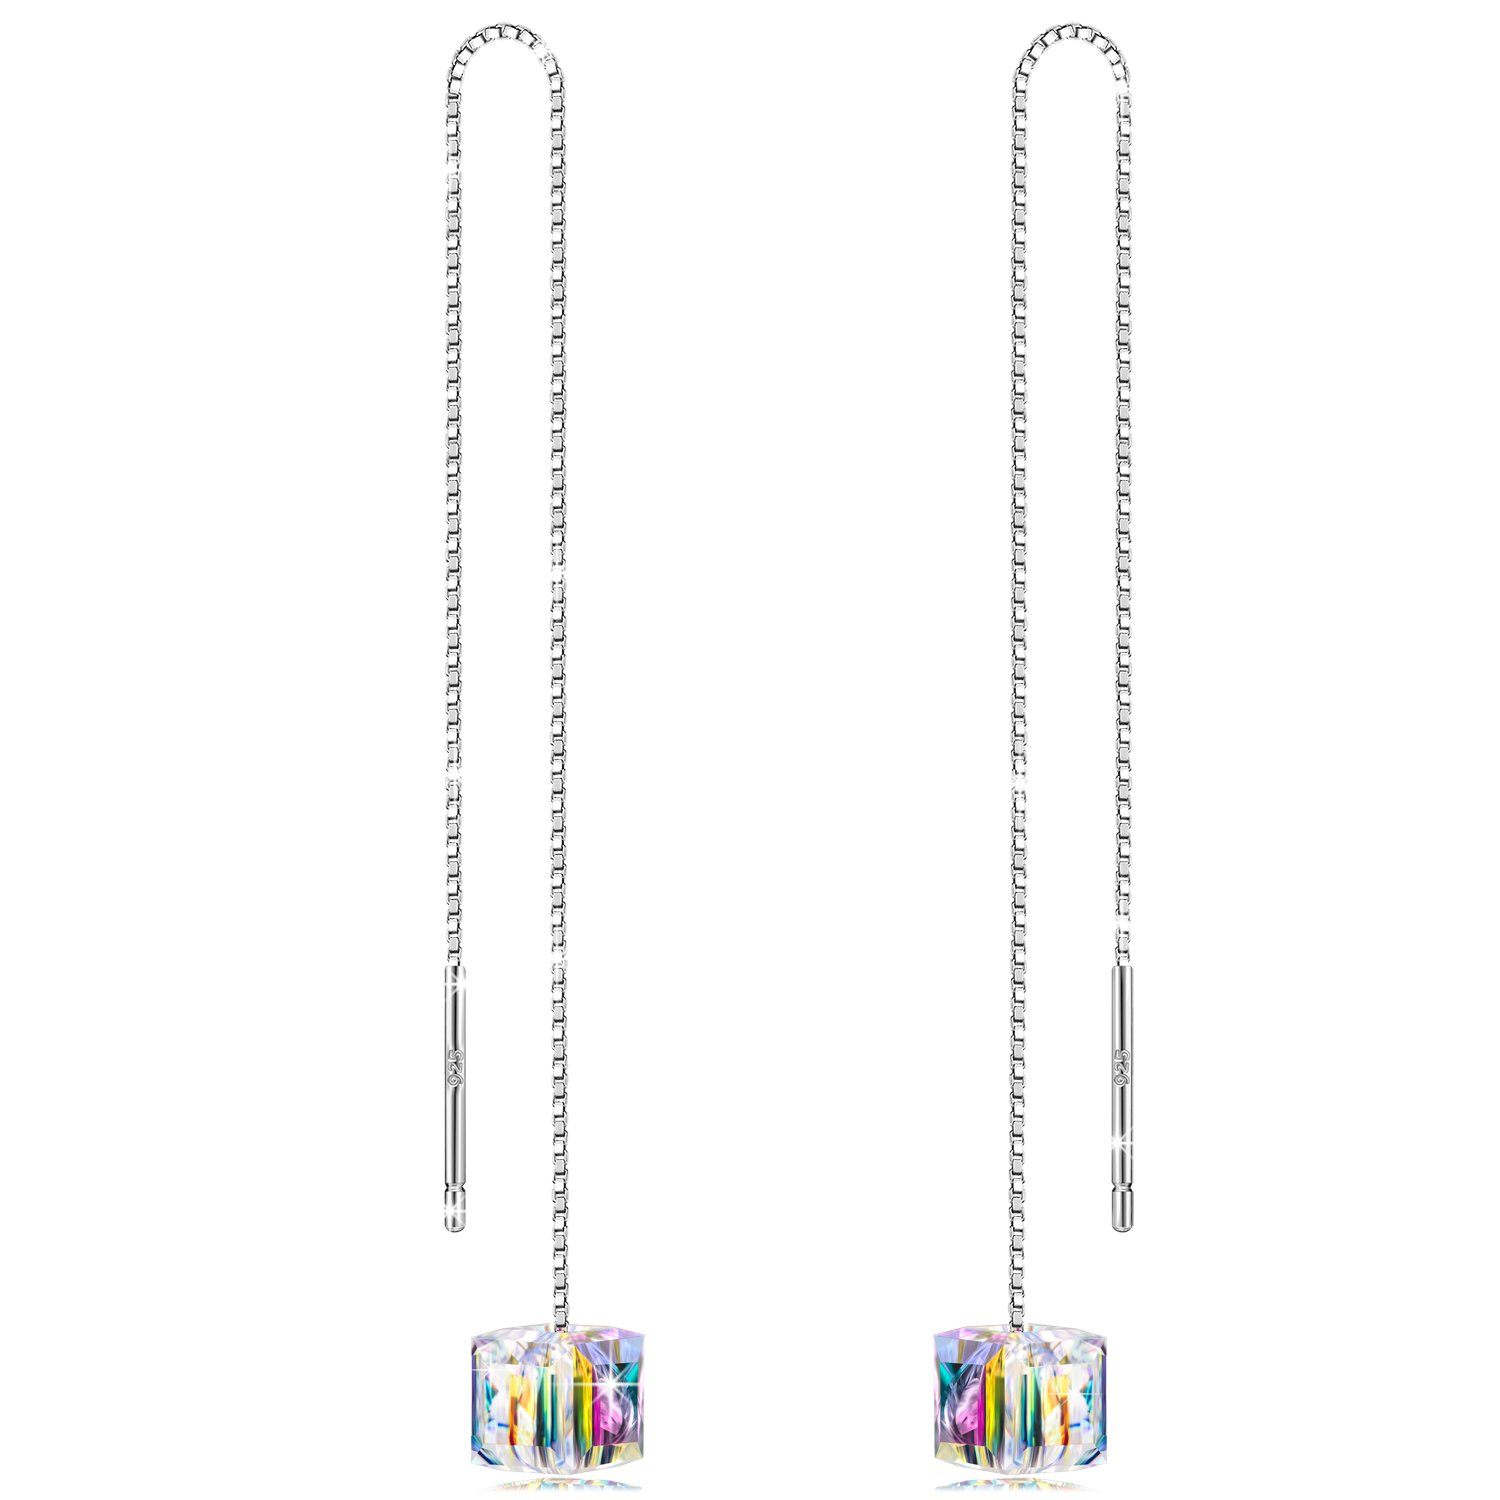 LADY COLOUR Mother's Day Jewelry Gifts for Mom, A Little Romance Series 925 Sterling Silver Dangle Earrings/Choker Necklace, Crystals from Swarovski Hypoallergenic Jewelry Gift BoxPacking